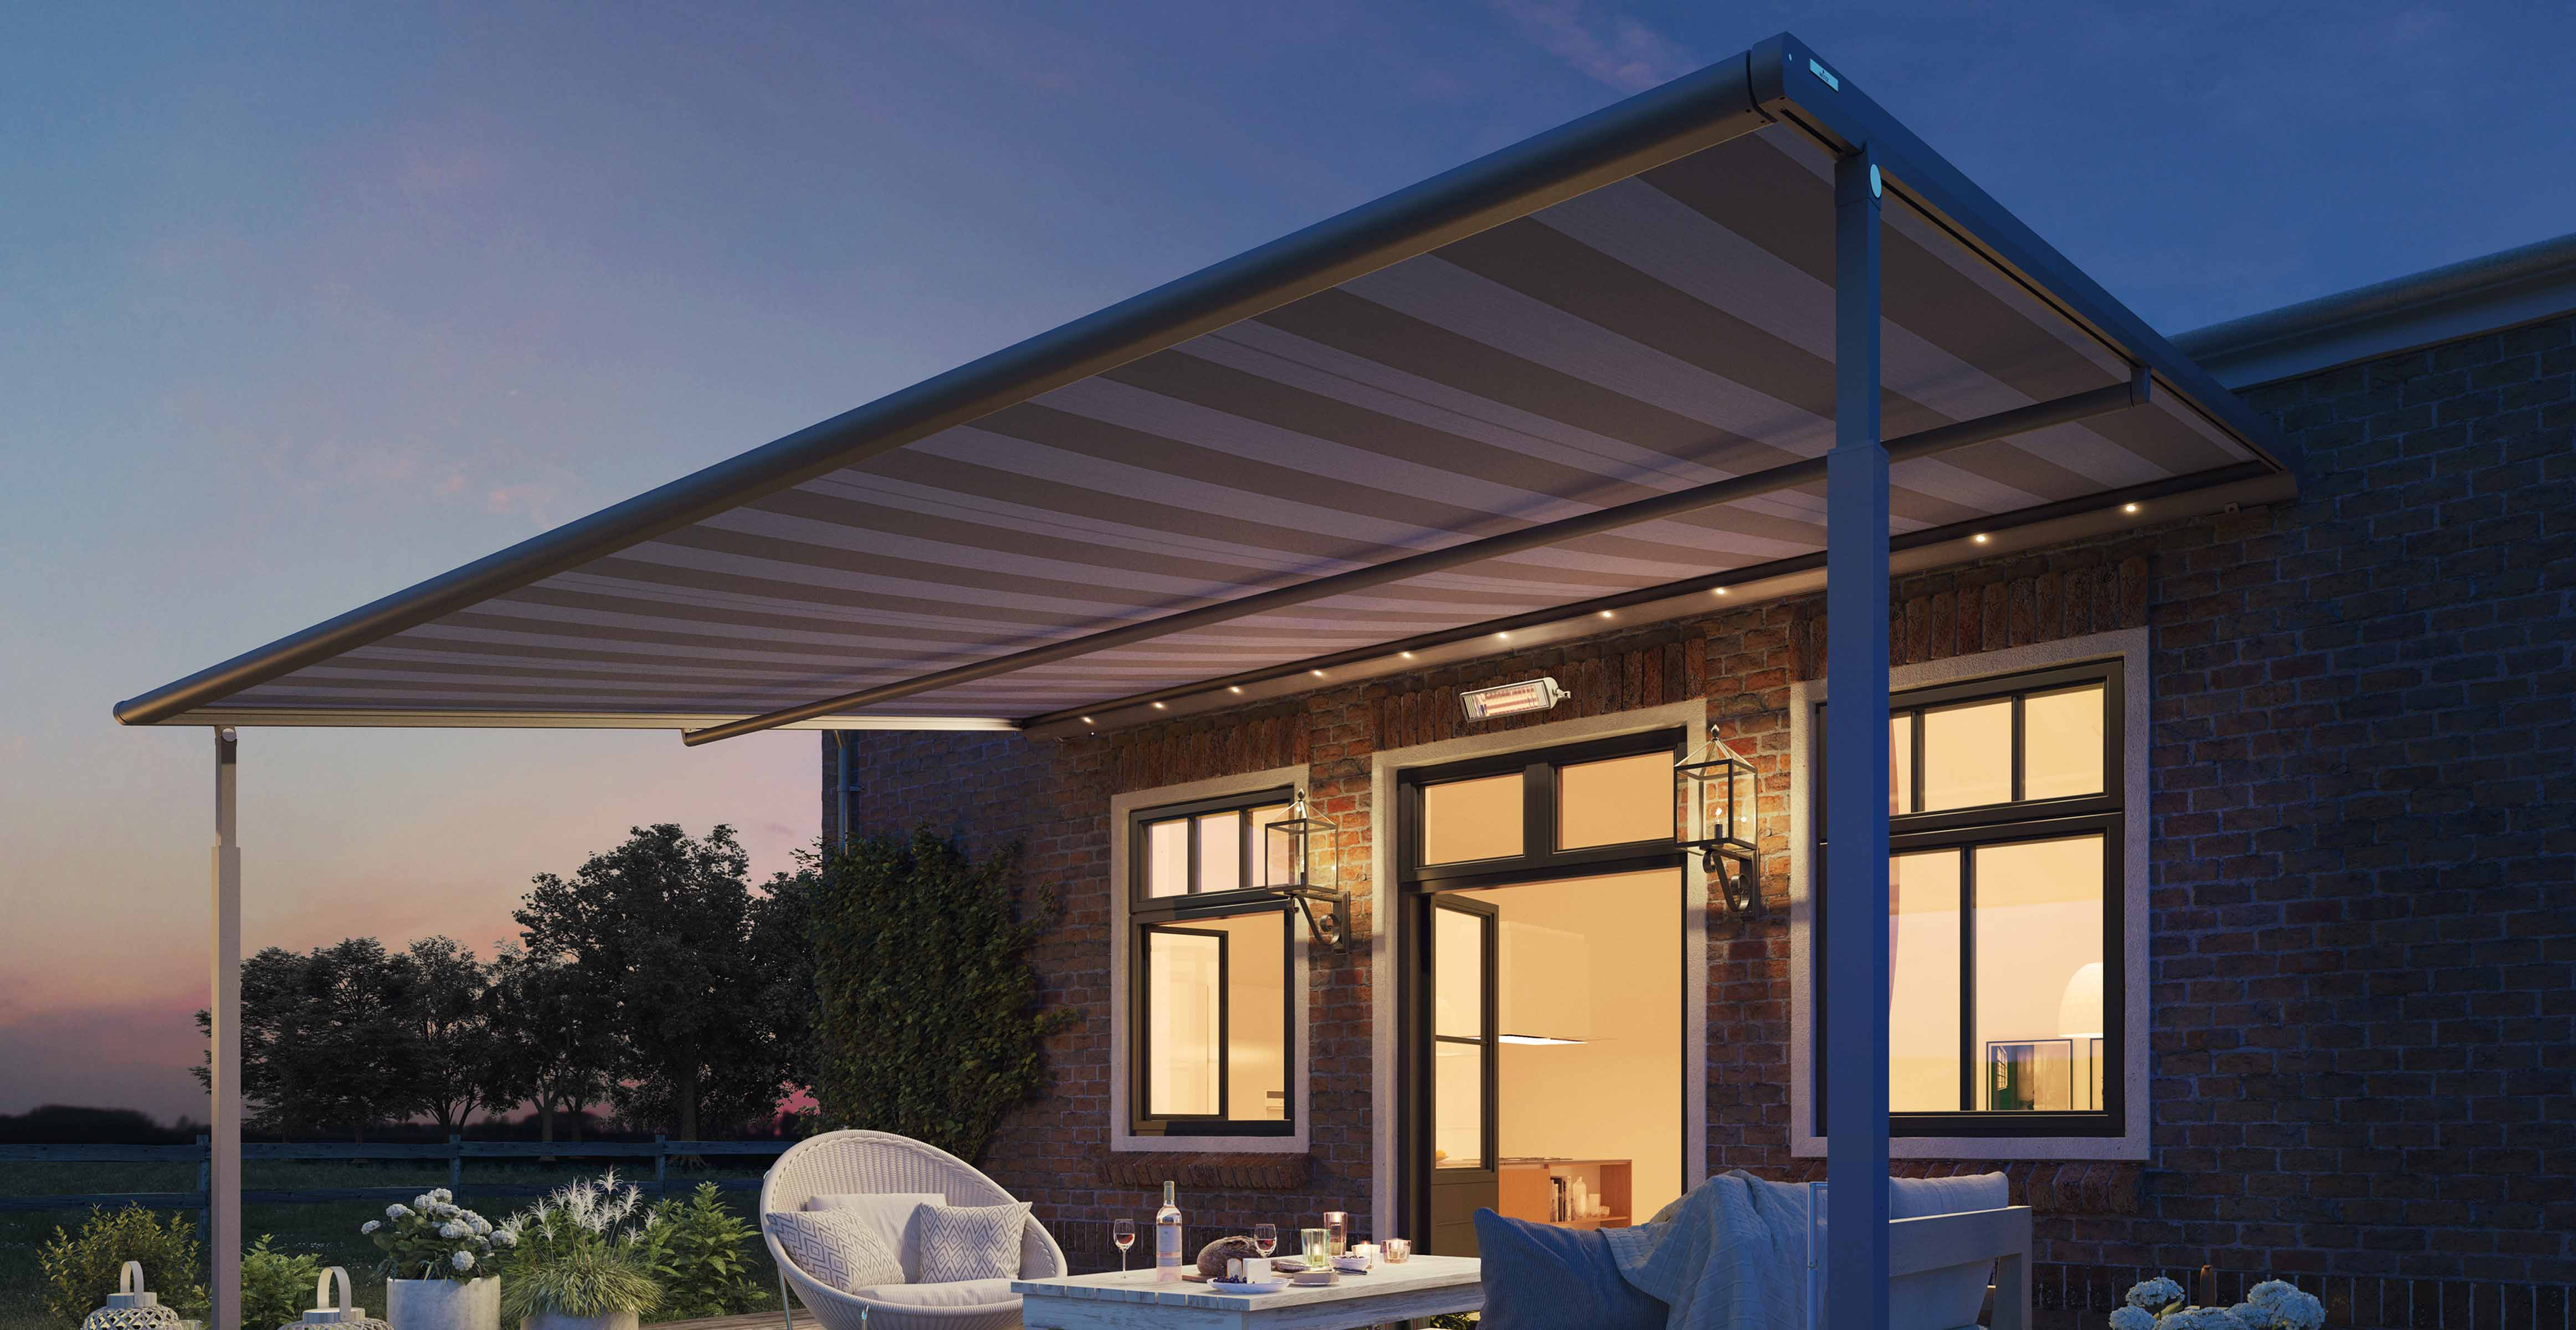 The Plaza Viva Rain Awning with Valance plus gives you more options